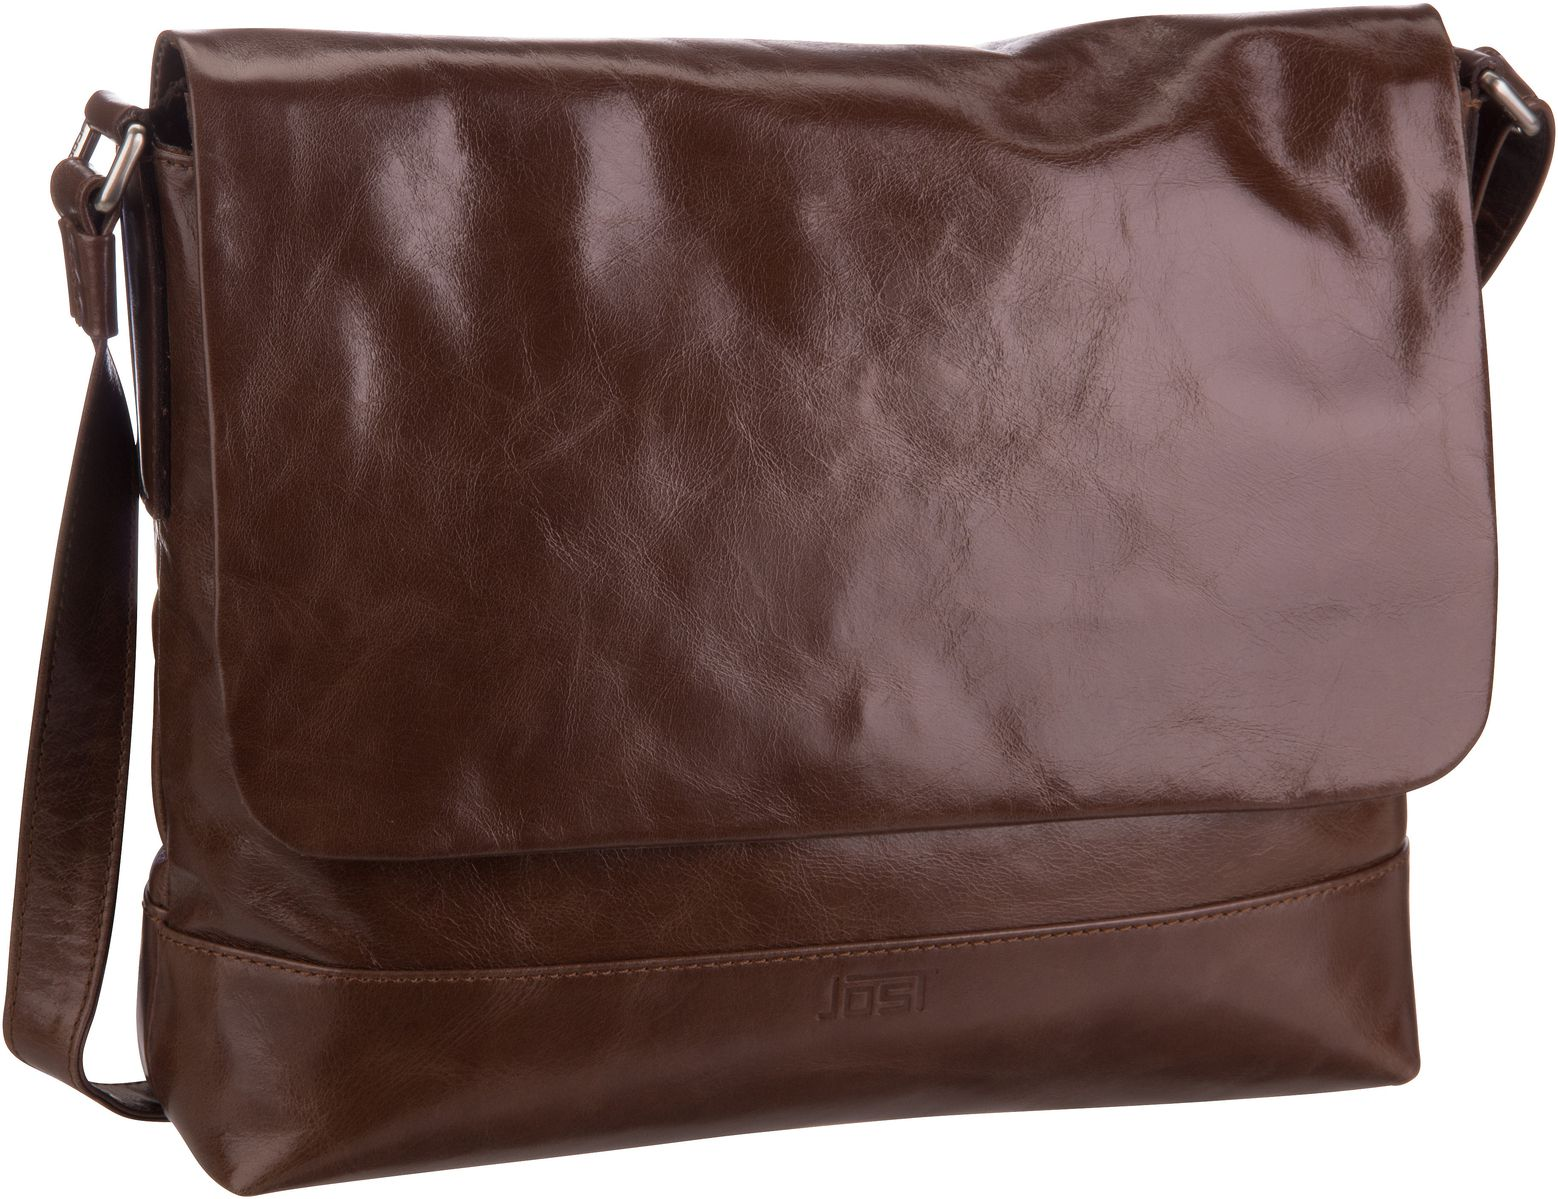 Umhängetasche Boda 6623 Shoulder Bag M Mocca